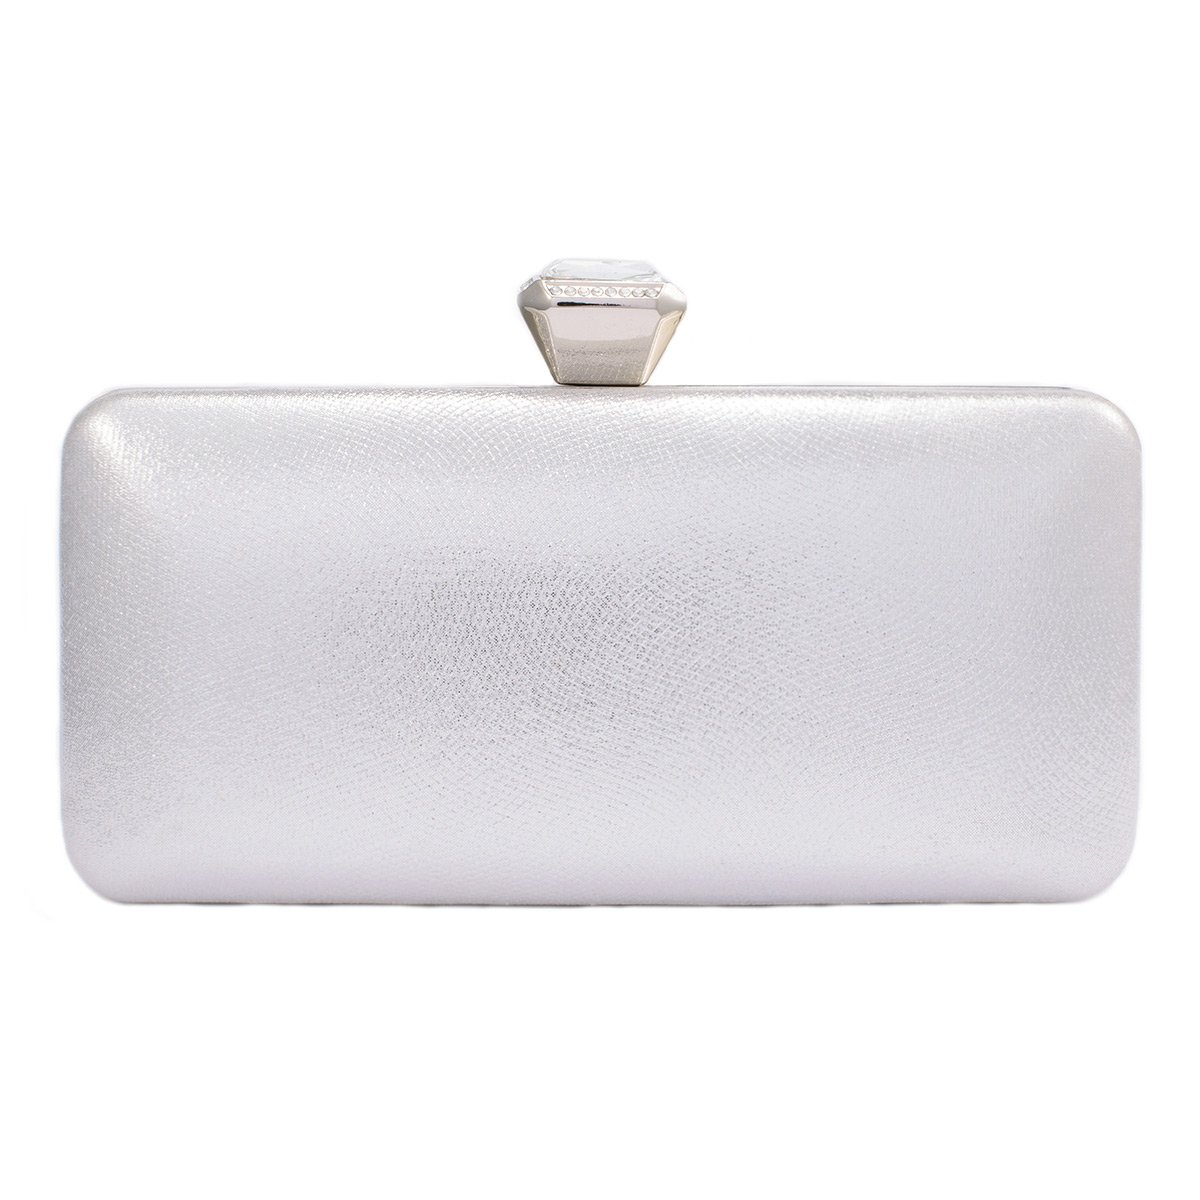 Darama Womens Exquisite Hardcase Top Clasp Wedding Clutch Bags,Silver